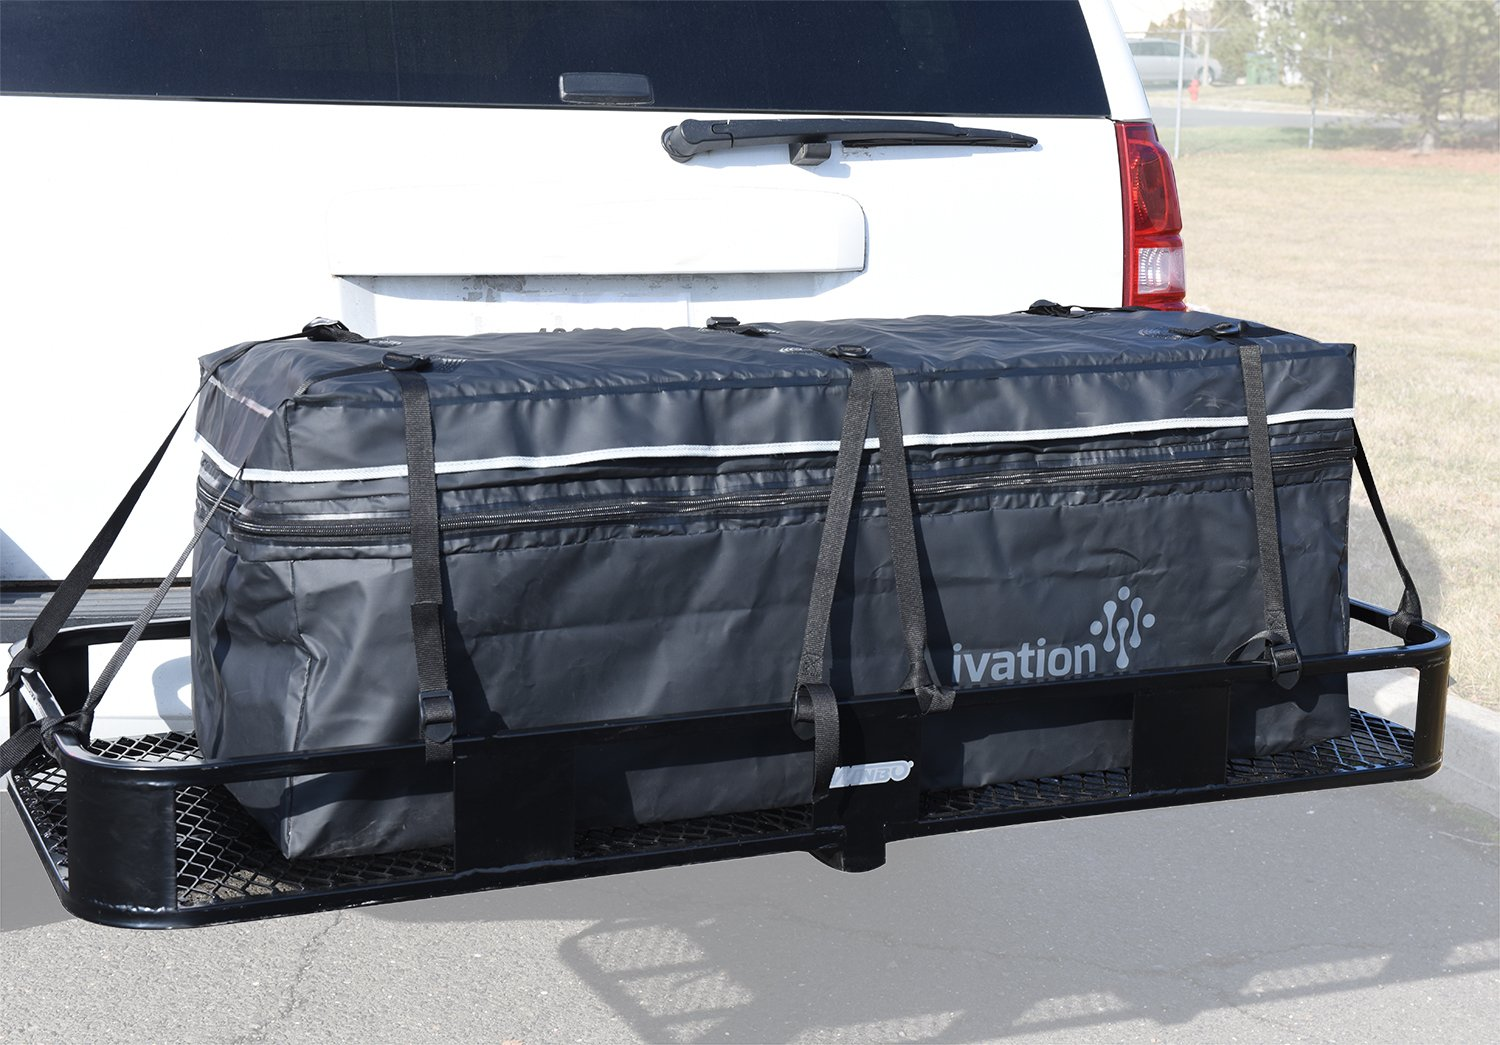 Ivation Hitch Bag - 100% Waterproof Expandable Hitch Tray Cargo Carrier Bag 48'' x 19'' x 22'' (11 Cu Ft) by Ivation